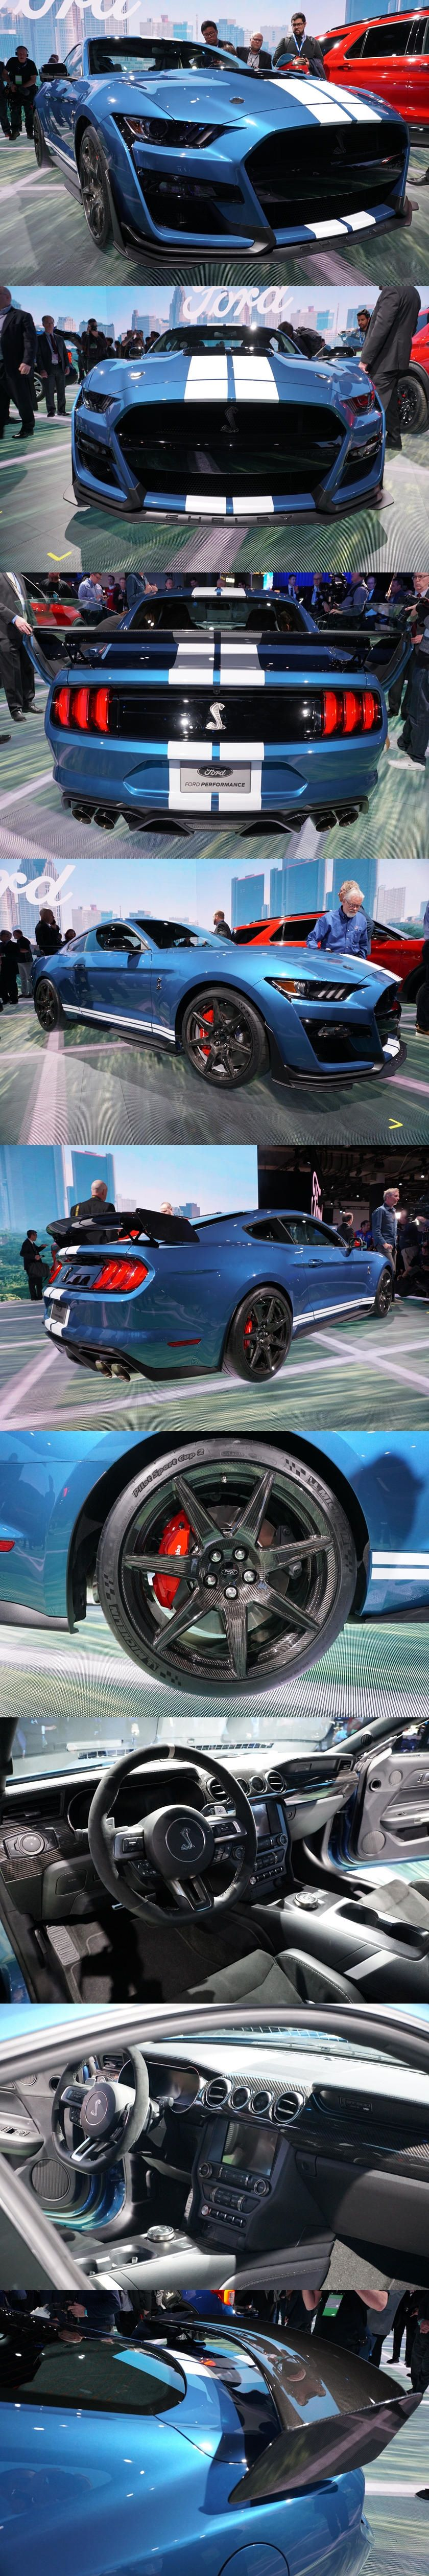 2020 Shelby Gt500 Could Get Manual Gearbox After All But Only If There Is Enough Customer Demand Shelby Gt500 Ford Mustang Car Ford Mustang Shelby Gt500